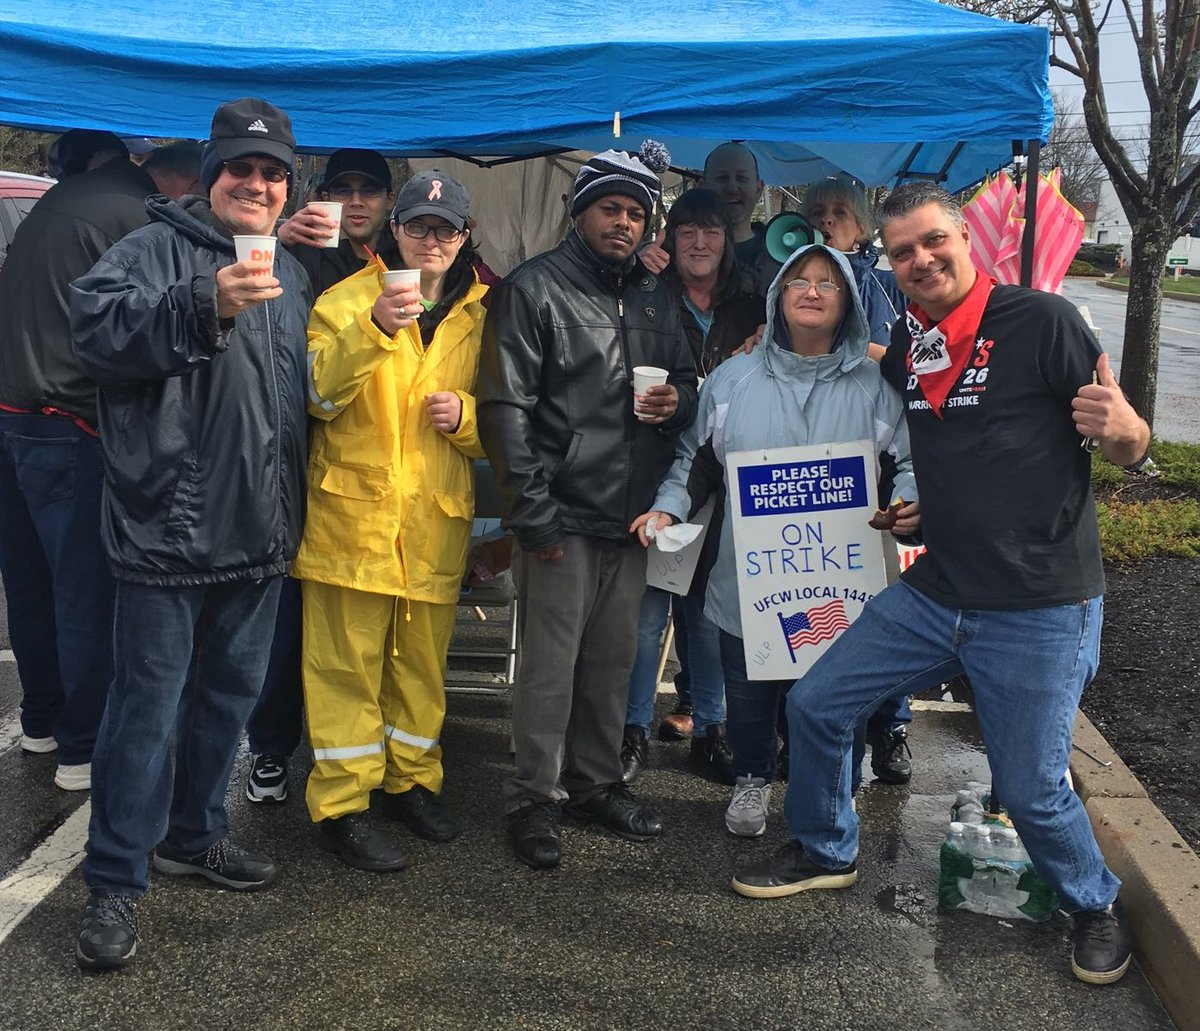 Congratulations to the @StopandShop Strikers on your new union contract! #StrikesWork #1u <br>http://pic.twitter.com/q79H2Z7hic